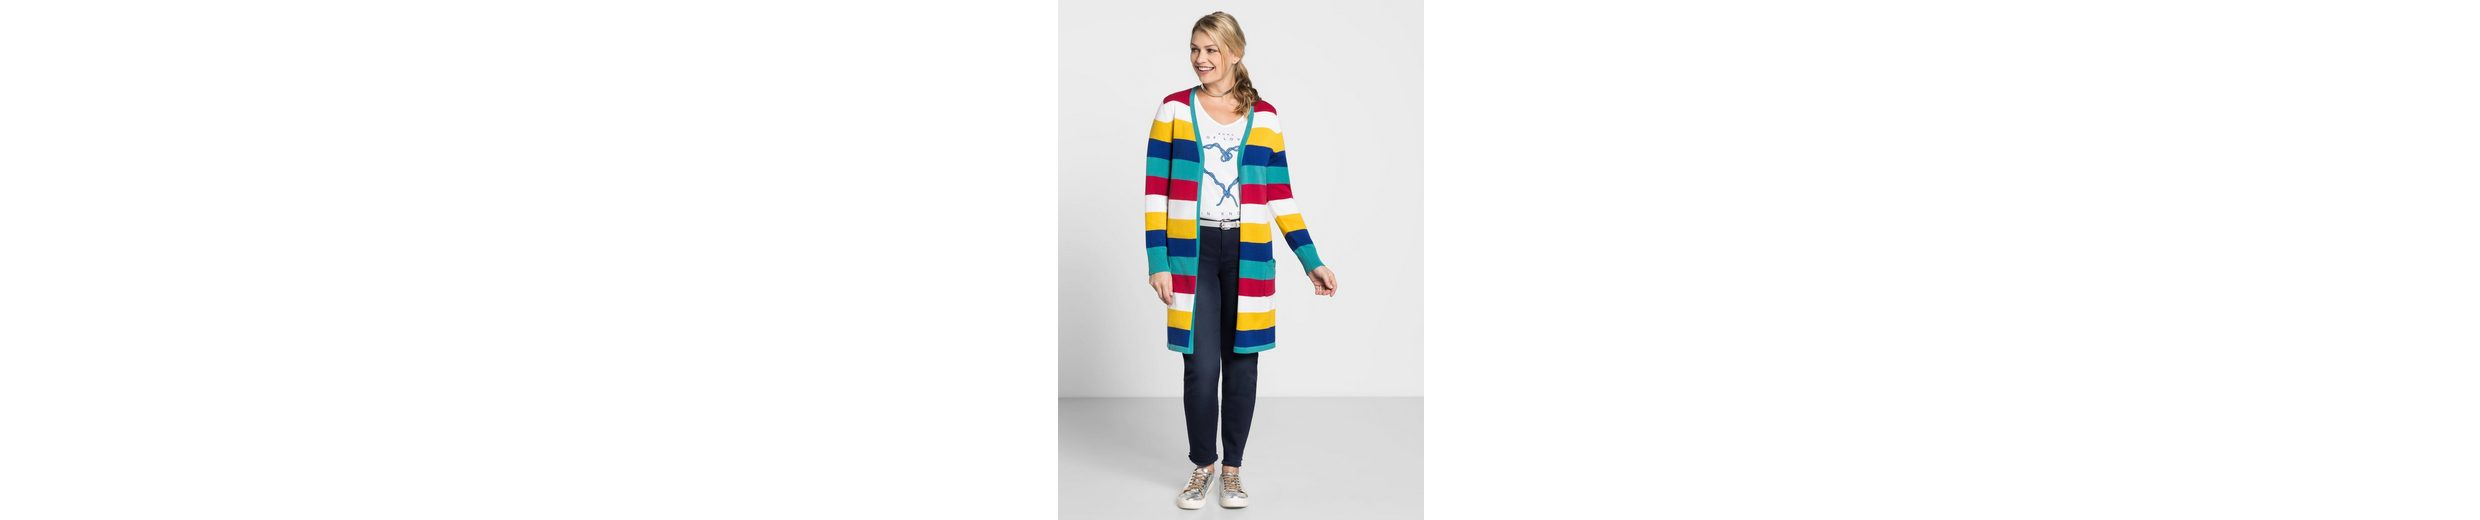 Longstrickjacke sheego Casual Longstrickjacke Longstrickjacke sheego sheego Casual Casual sheego Casual sheego Longstrickjacke rxwCrPqa